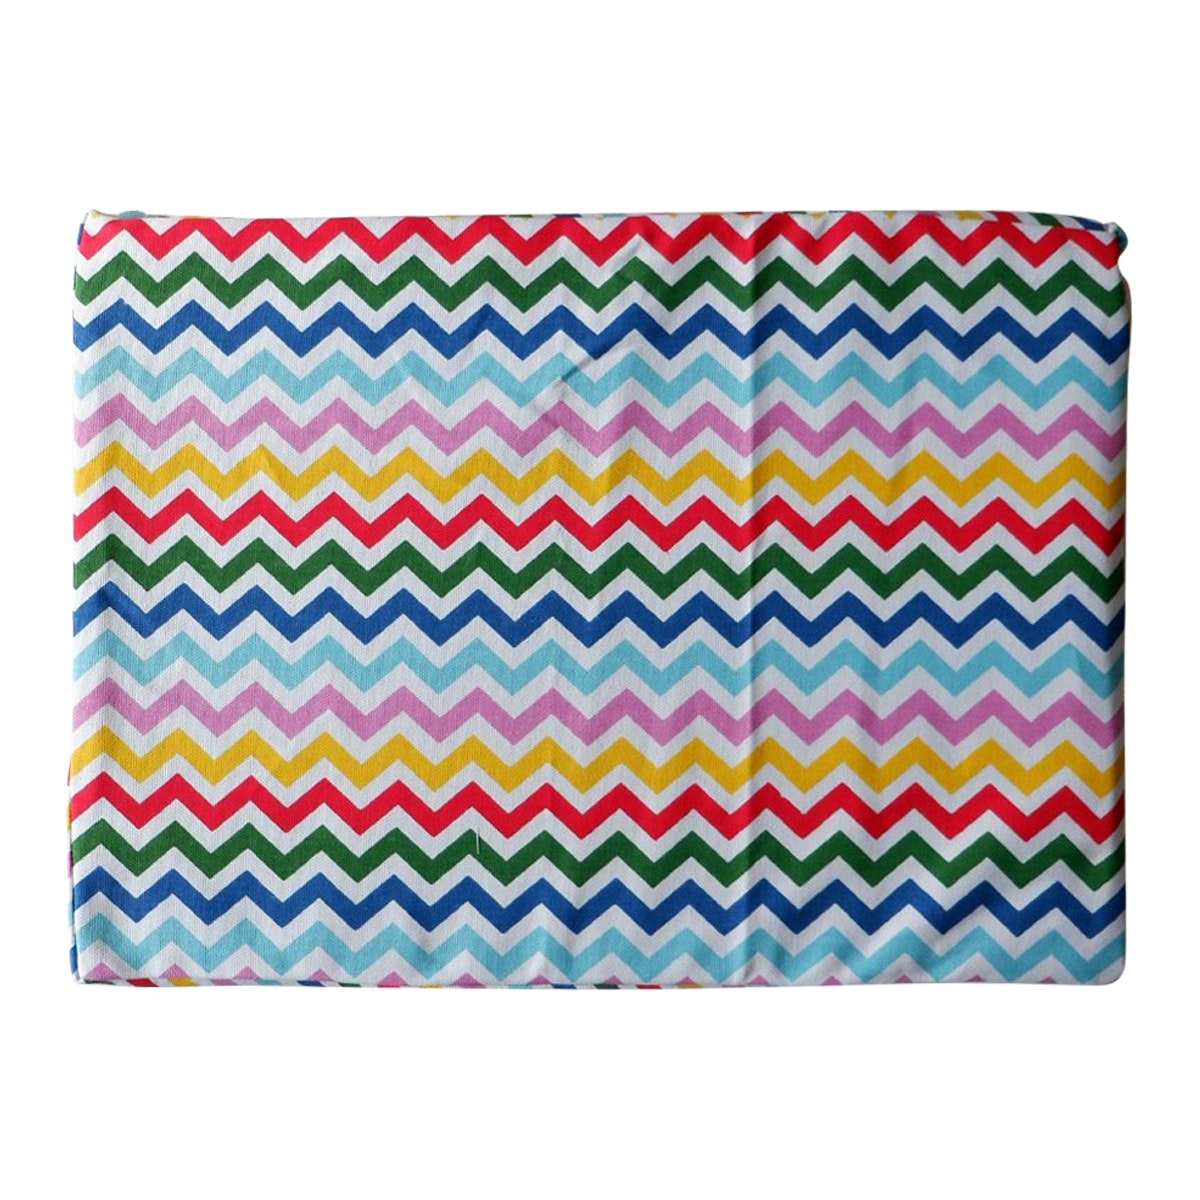 Stiletto Living Floor cushion / Alas kursi - Rainbow Chevron